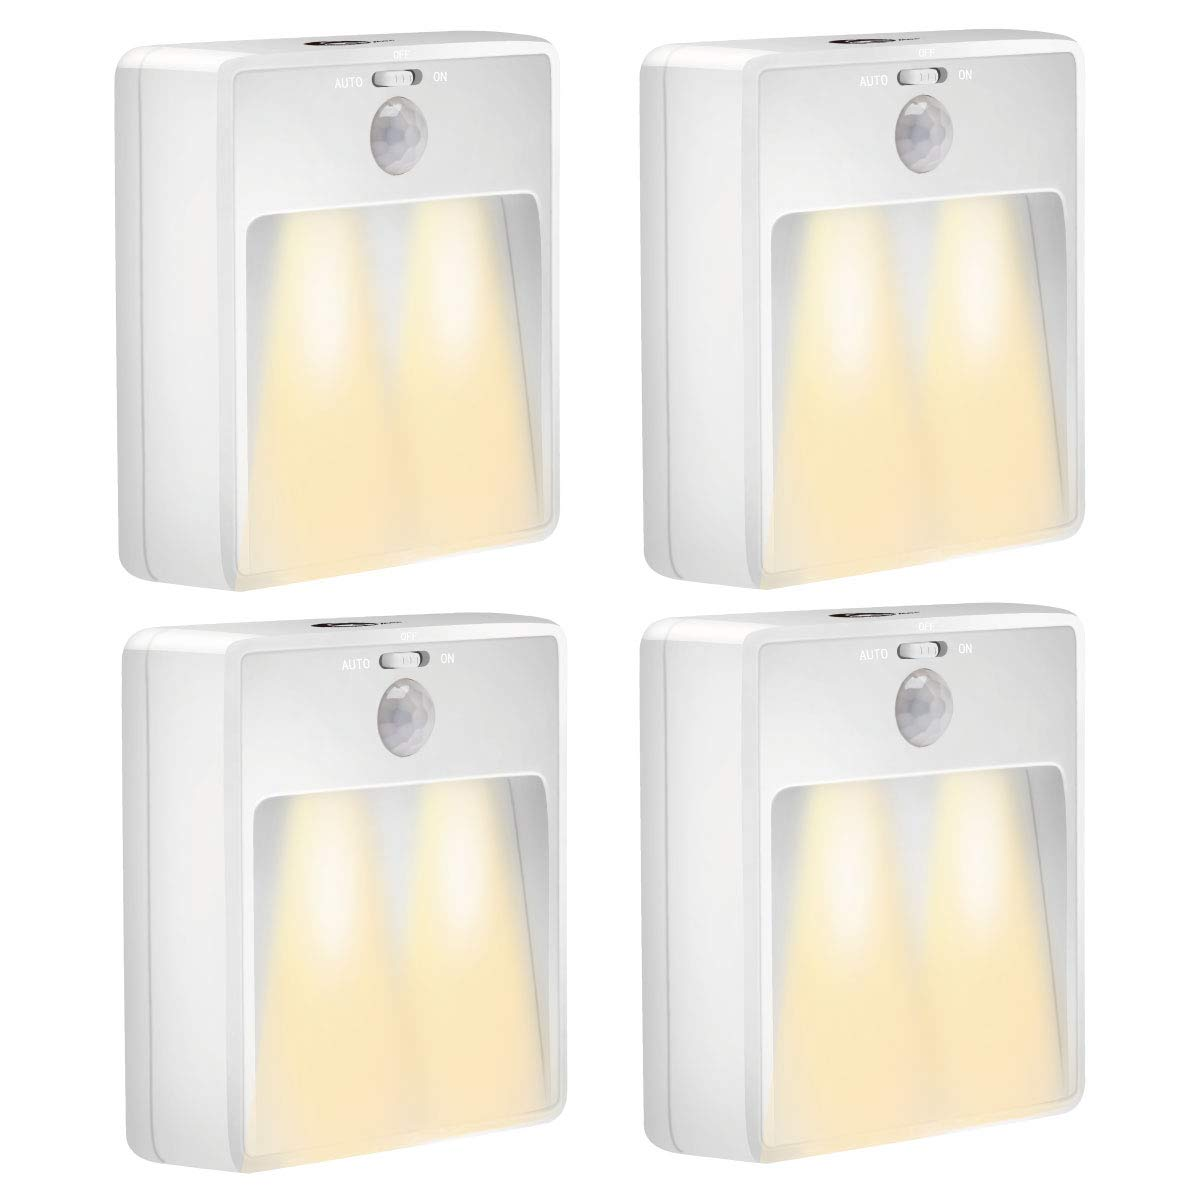 IMIGY Night Light, Sleep Friendly Motion Sensor LED Light Powered by Battery, Stair Closet Cabinet Light for Hallway Bathroom Bedroom Kitchen Indoor Corners, White - Pack of 4